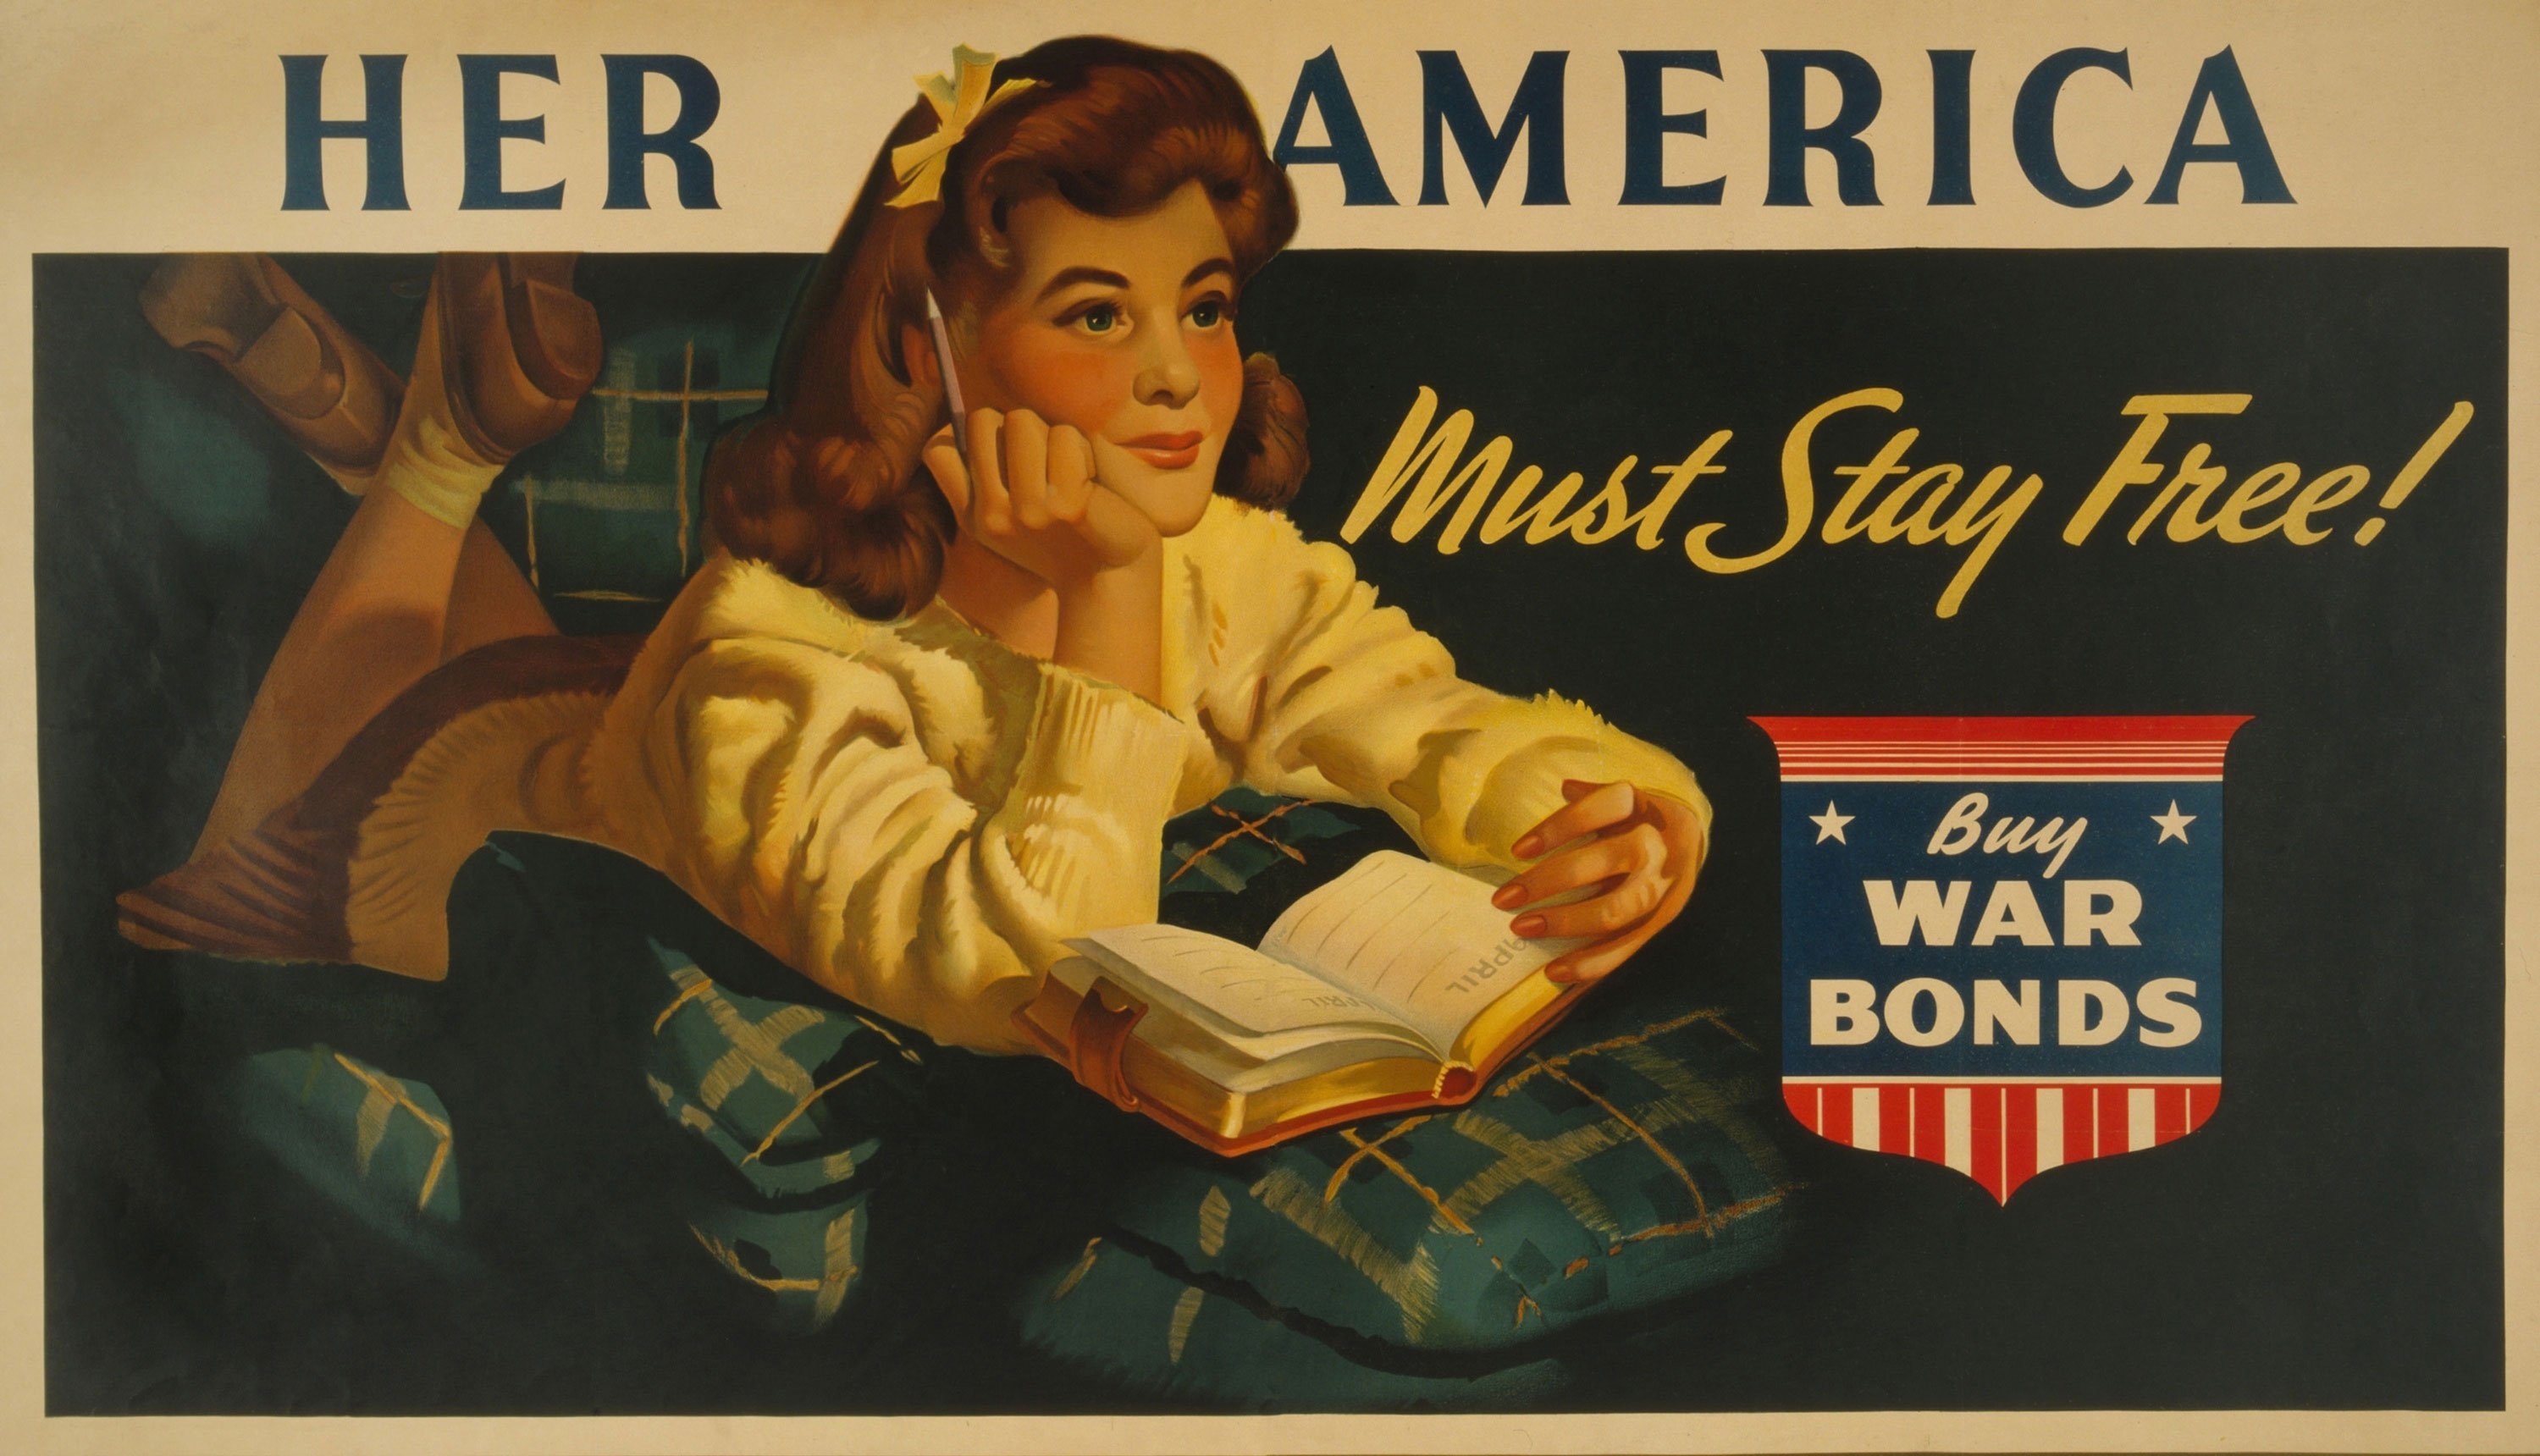 Shutterstock illustration ID: 249573553 American WW2 poster. 'Her America must stay free! Buy war bonds,' reads a poster showing a daydreaming teenage girl about to write in her diary. Ca. 1943. Used with permission.